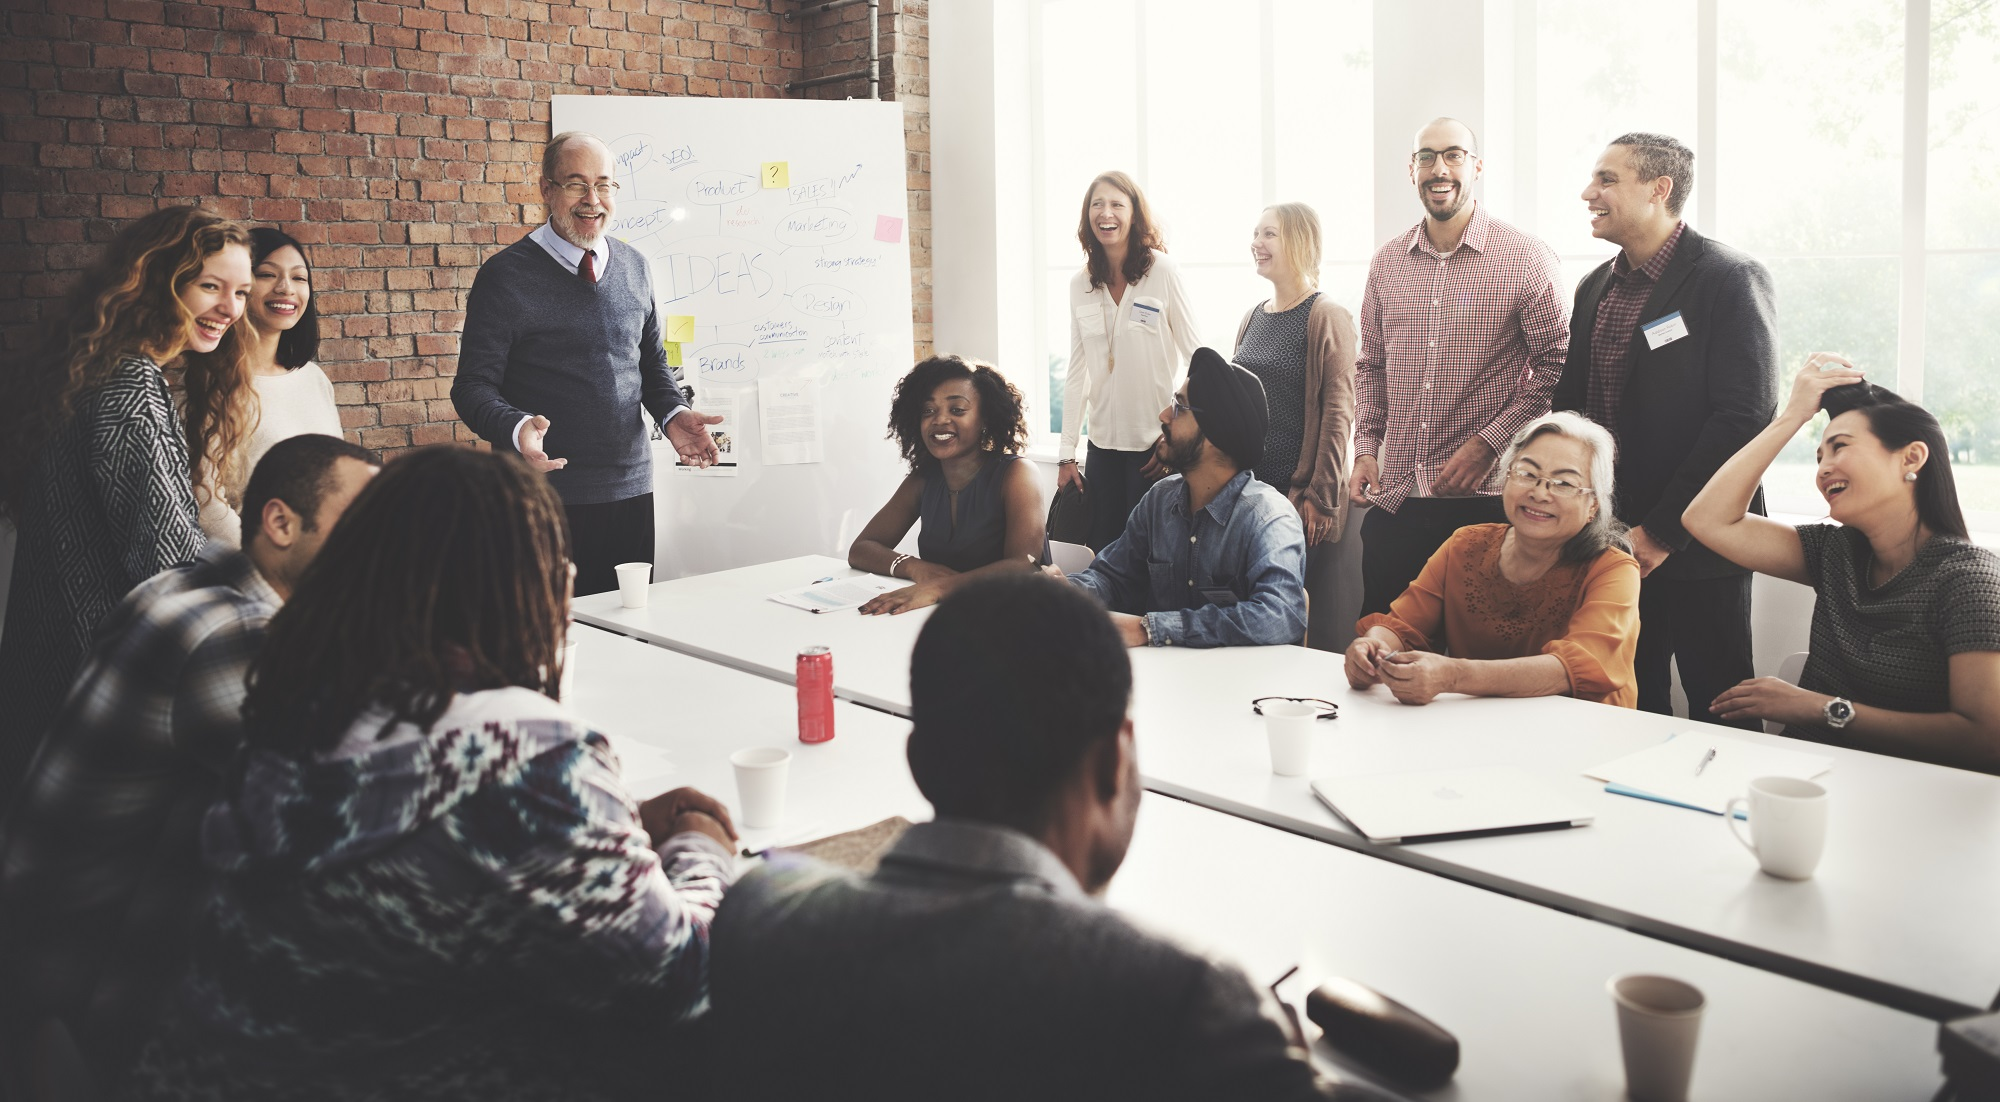 After 75 years and thousands of leadership development programs, AIM Corporate General Manager Scott Martin shares some of the keys to designing a successful leadership development program.